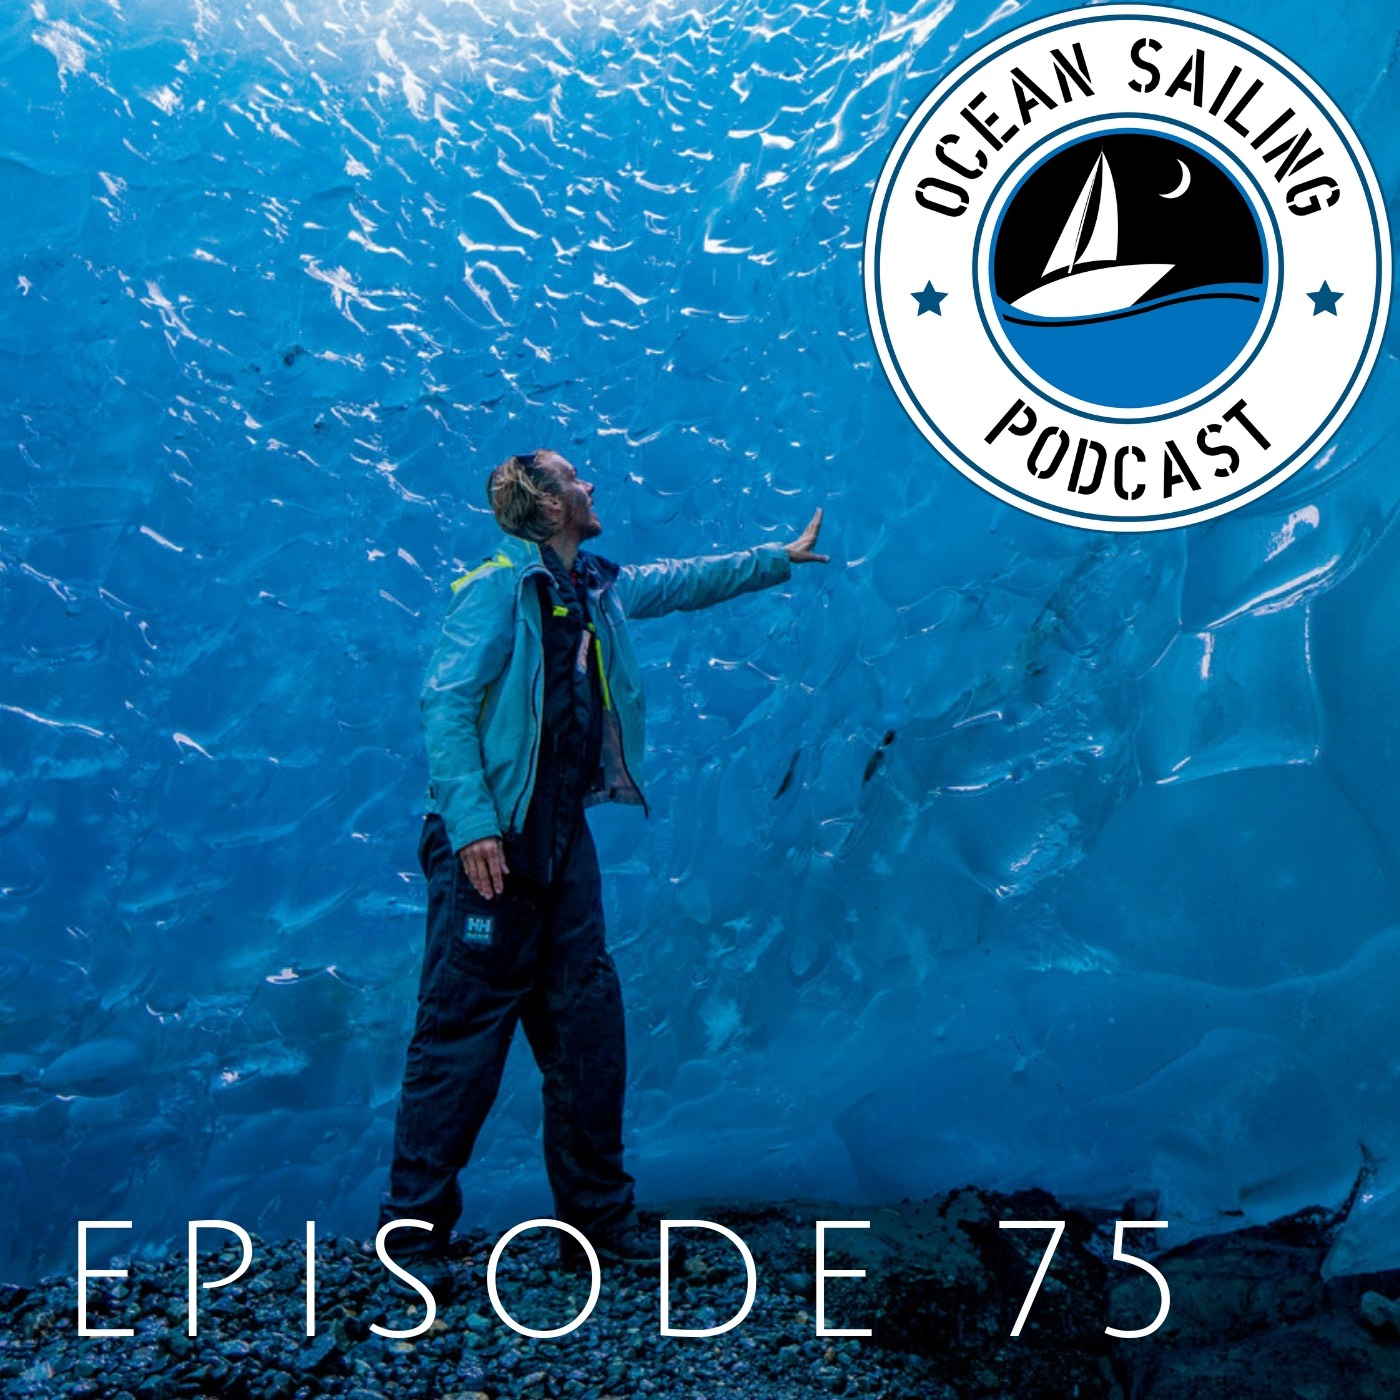 Best Episodes of Slow Boat Sailing Podcast